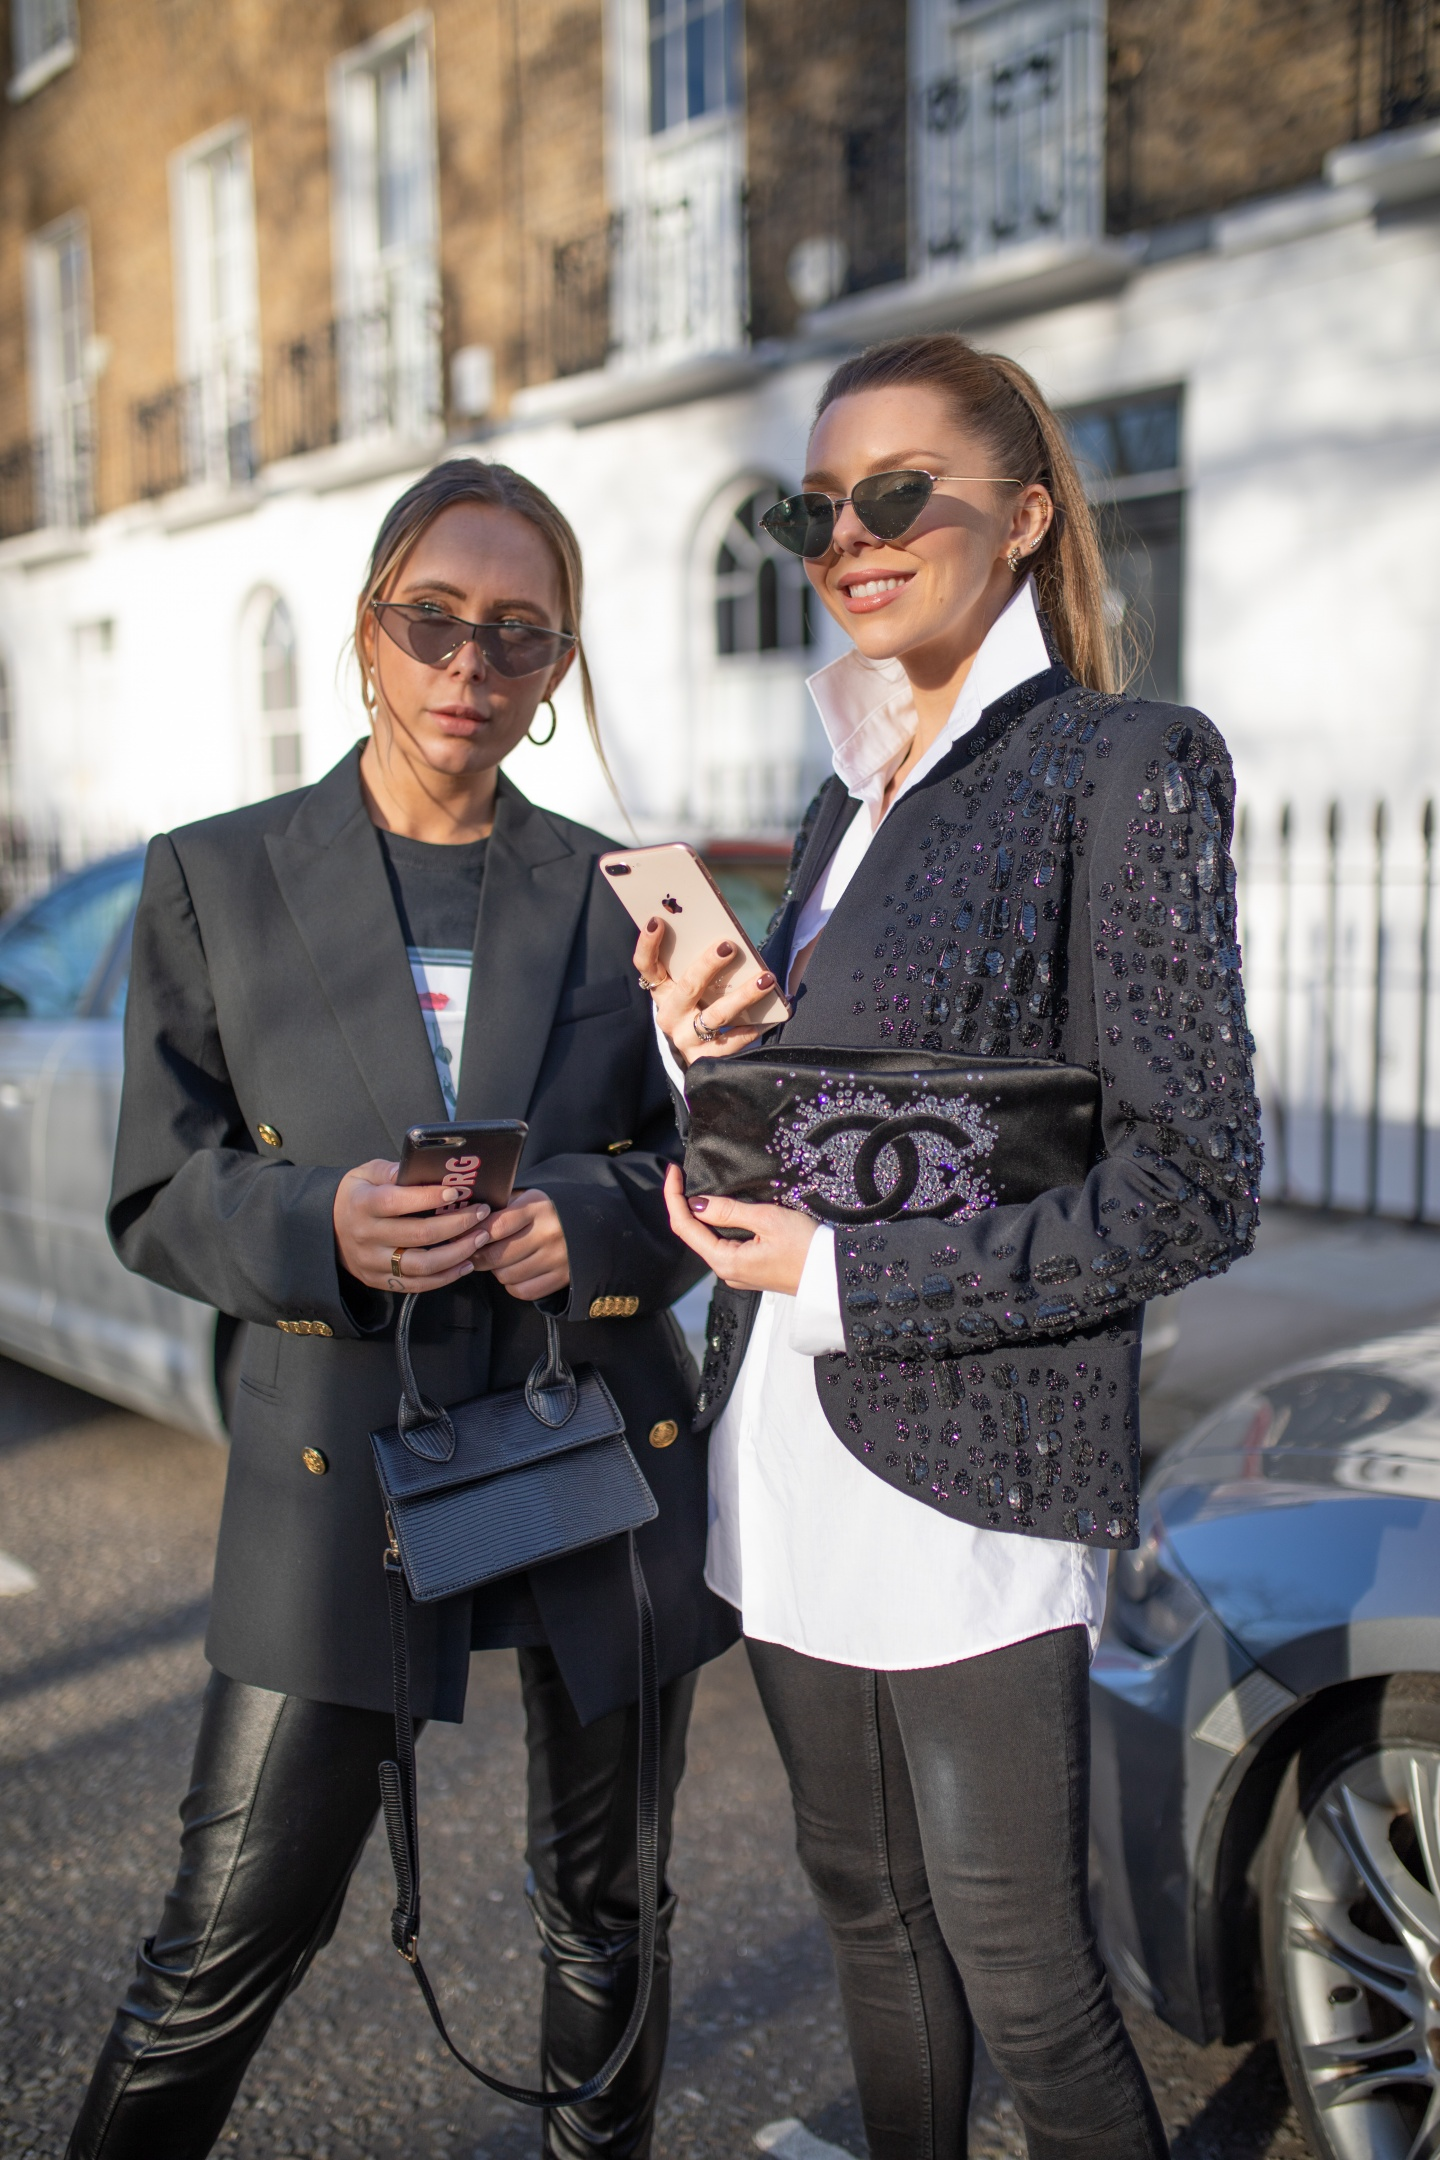 london fashion week, lfw, london fashion week street style, fashion, ss19, celine, emilio pucci, chanel